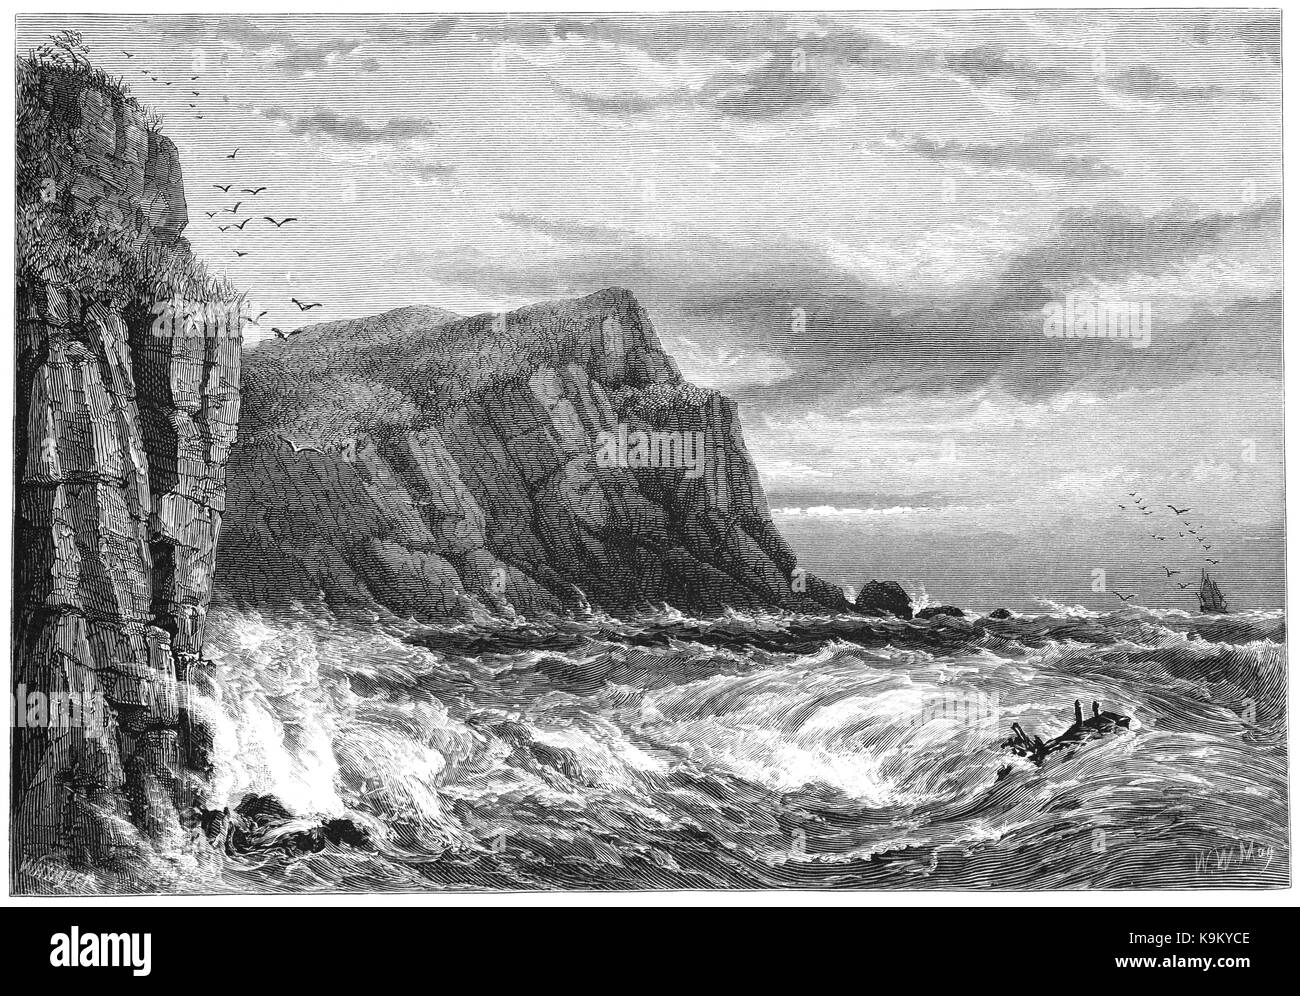 1870: Ilfracombe is a seaside resort and civil parish on the North Devon coast, England, with a small natural harbour - Stock Image